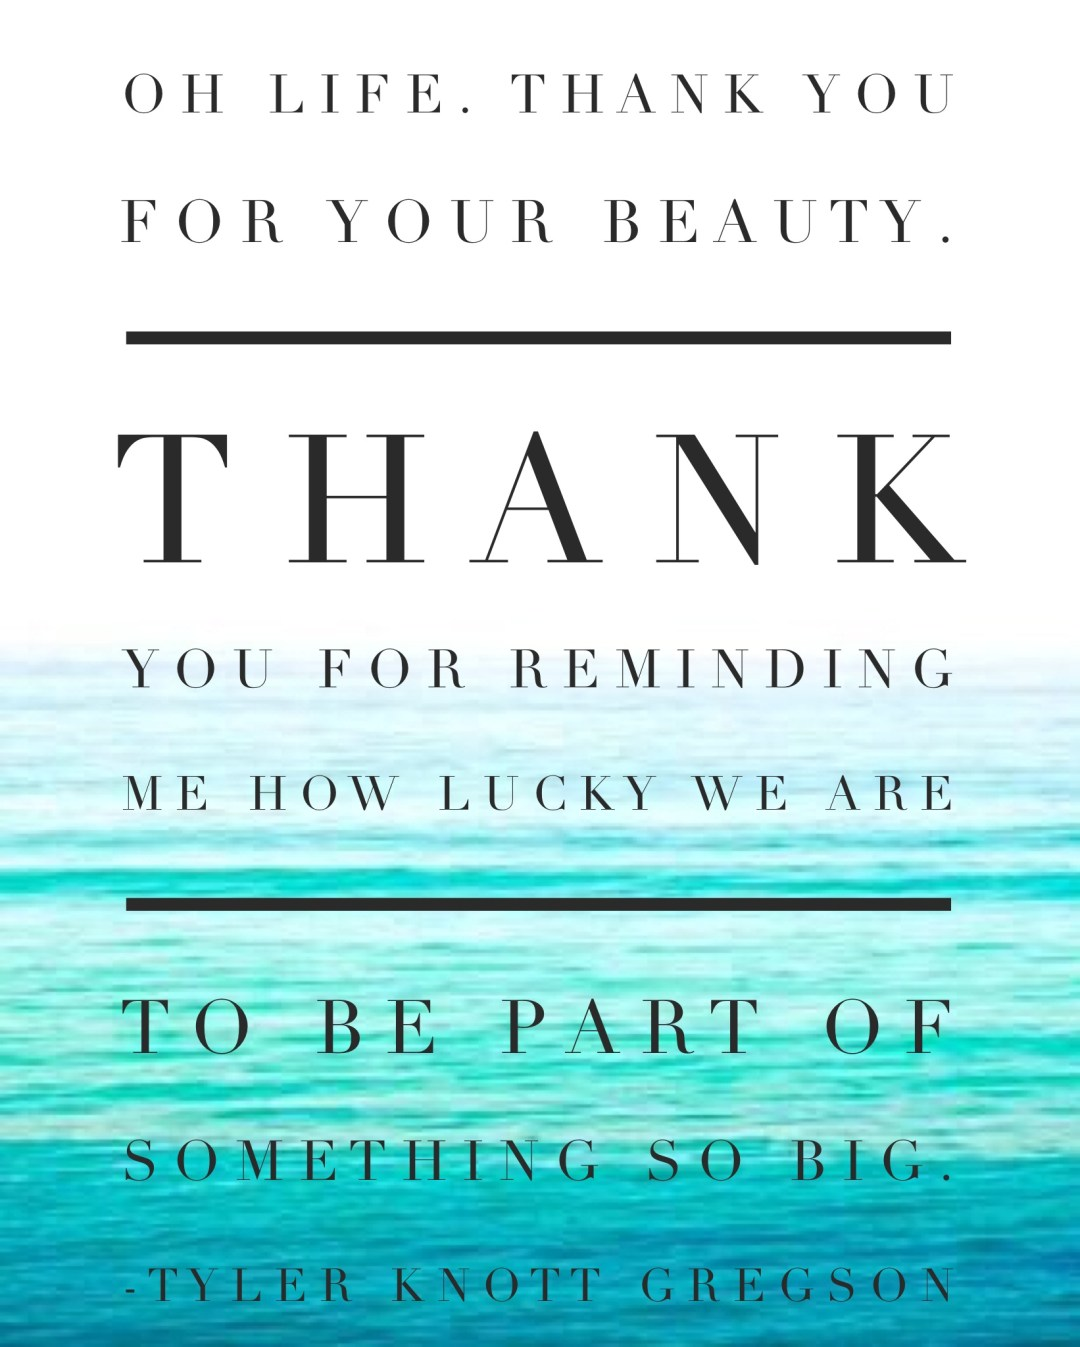 Friday Freebie by Twinspiration: http://twinspiration.co/friday-freebie-thank-you-life-printable/